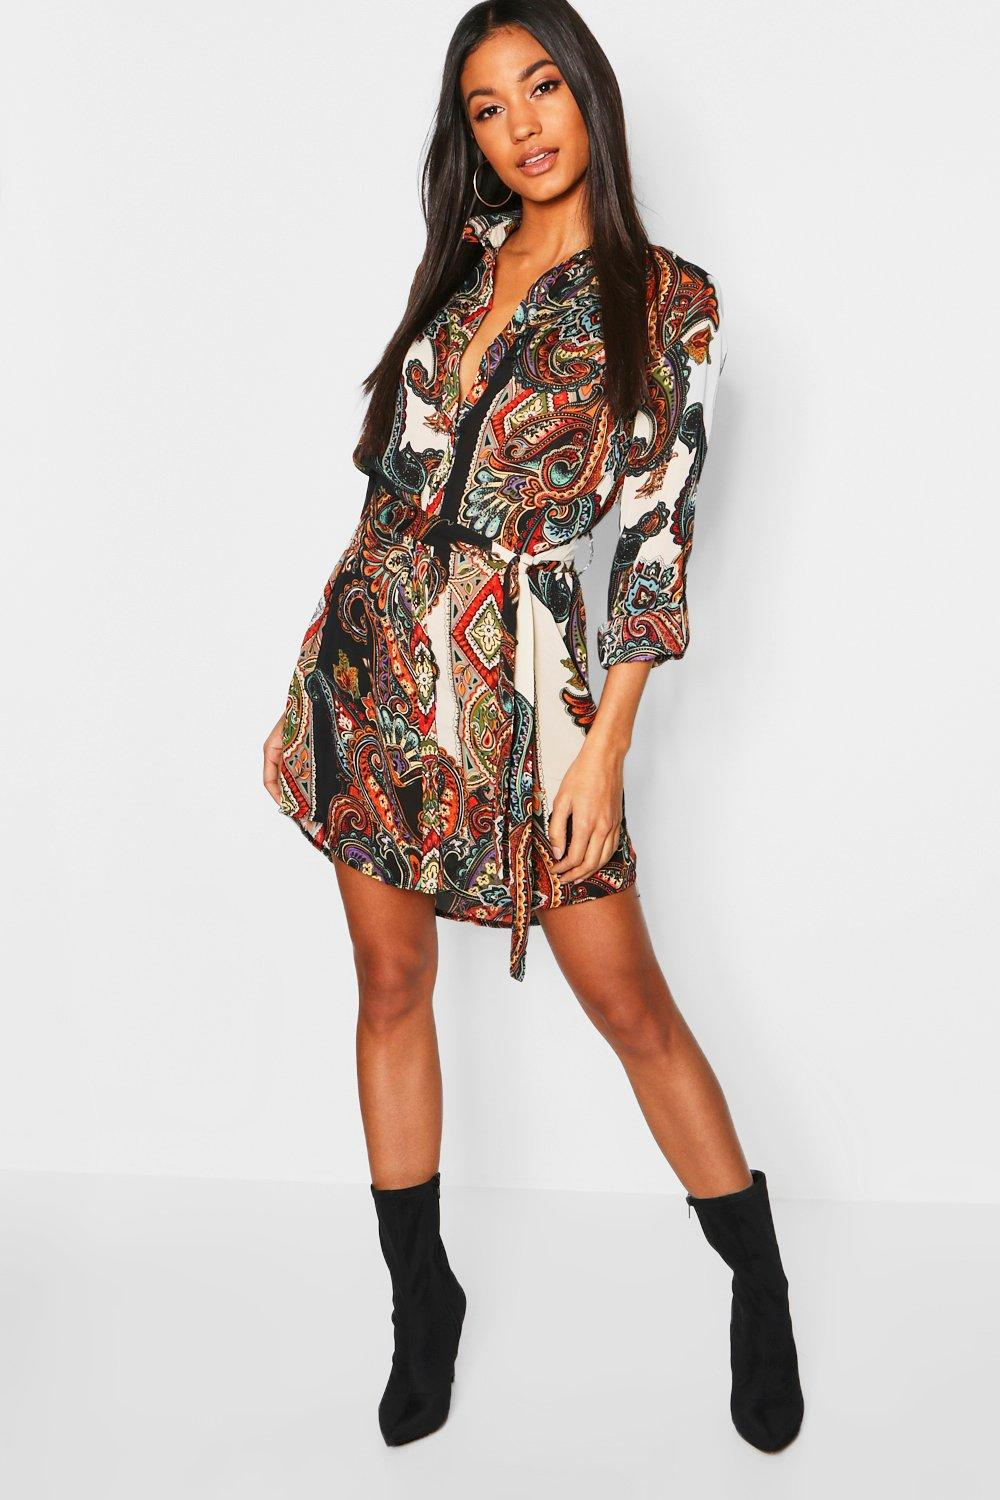 Rhiannon Paisley Shirt Dress